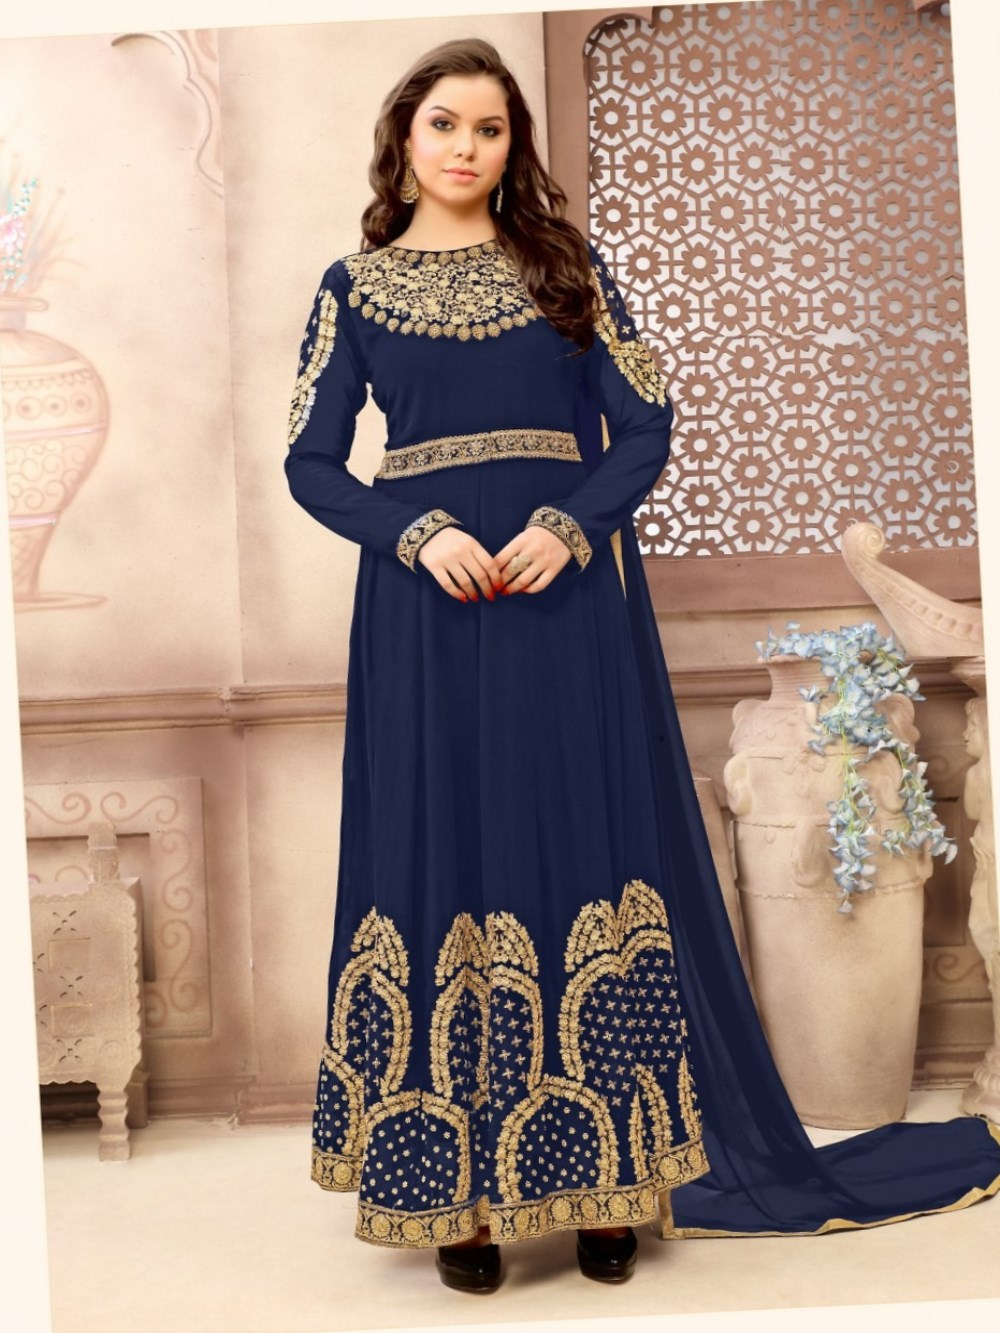 e5c62ec68 Plus size indian wedding dress - Best Ideas  Bridal Saree 2019